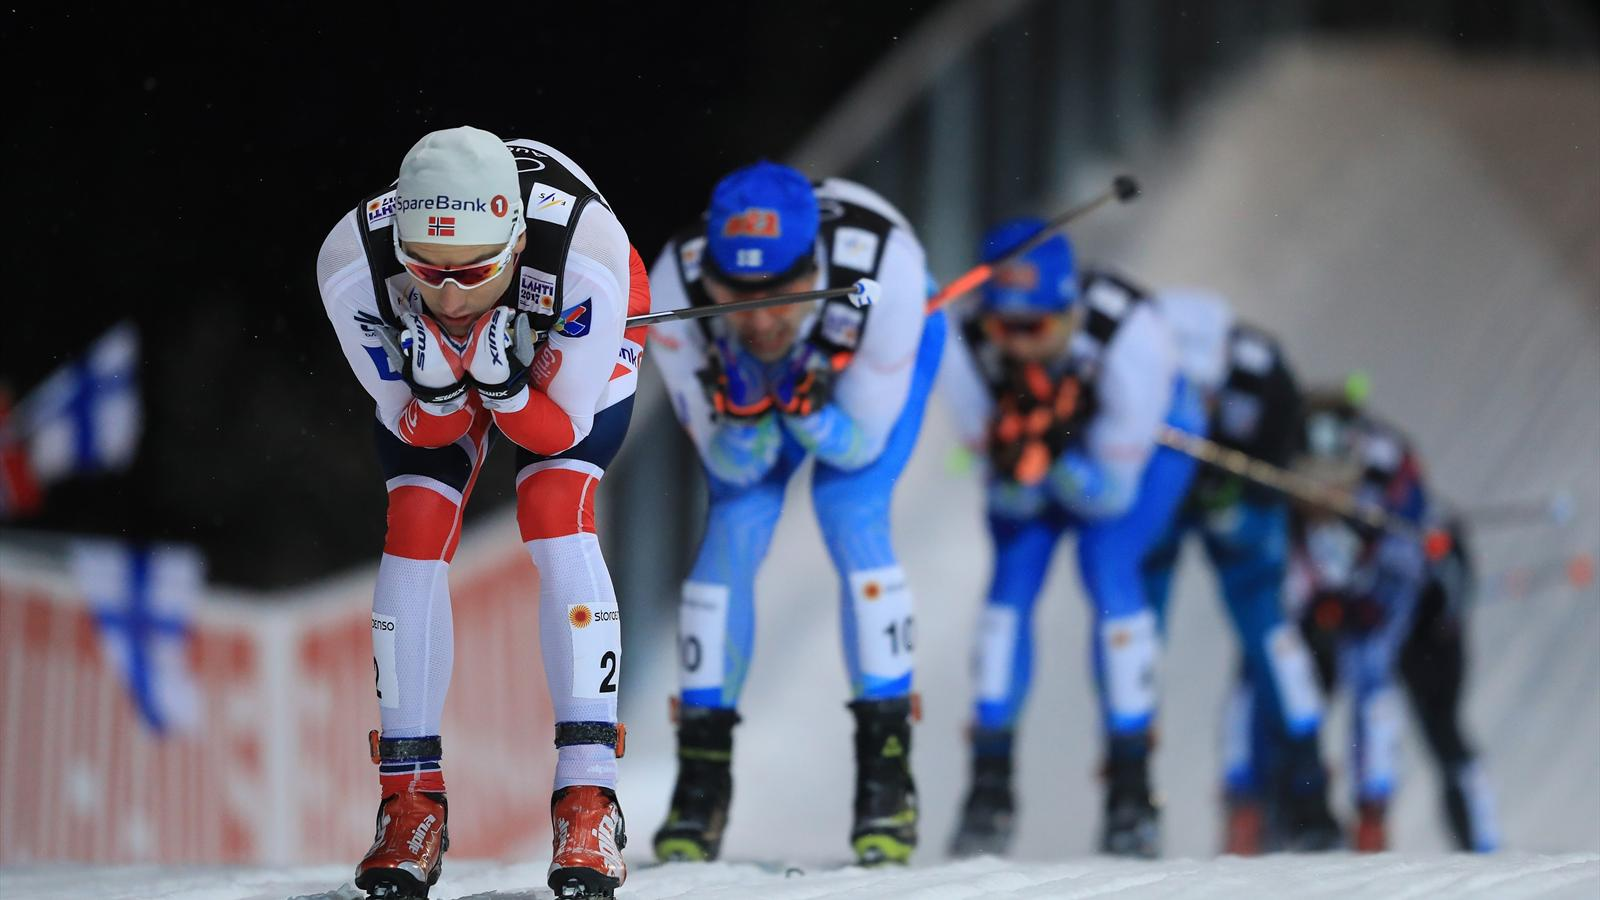 Watch the Cross-Country World Cup LIVE on Eurosport Player - Cross-Country Skiing - Eurosport